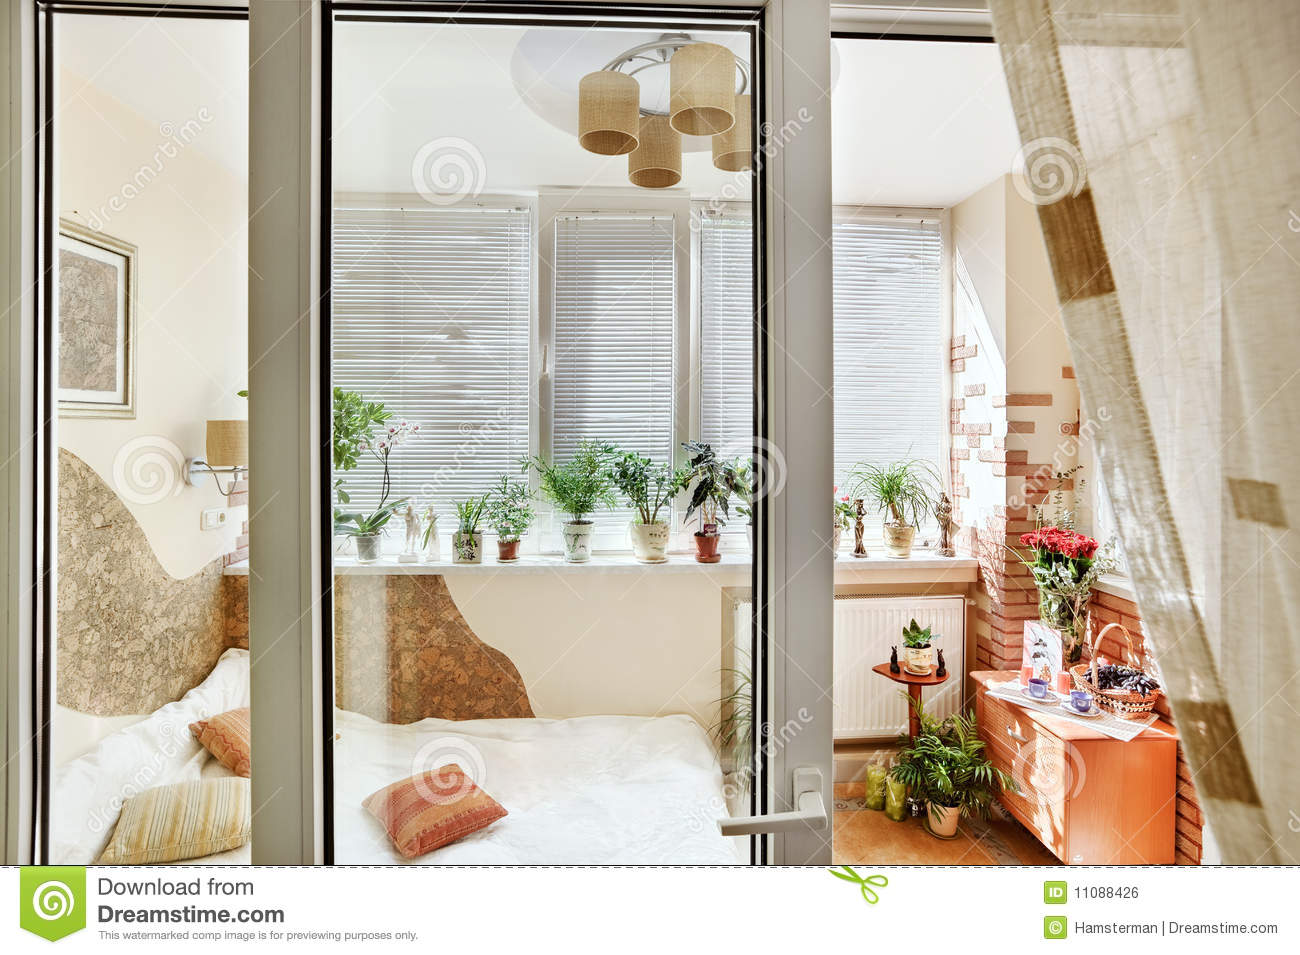 Bedroom balcony stock photo image 11123040 bedroom balcony p.